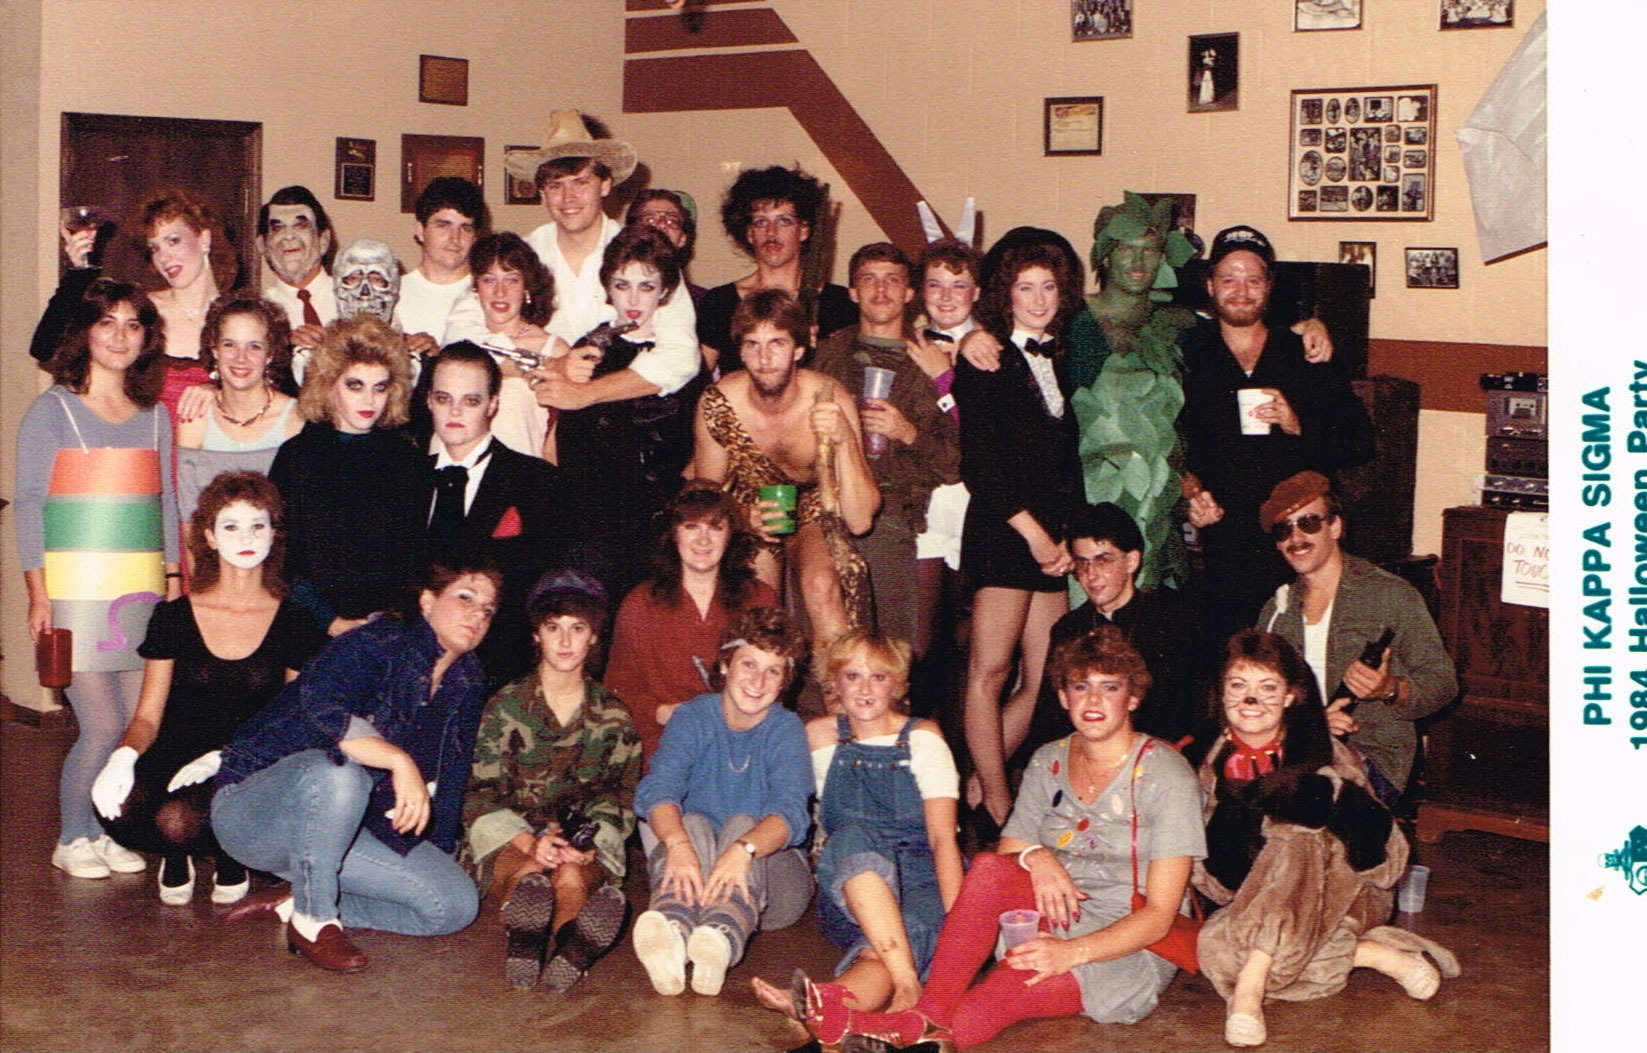 1984 Halloween Party